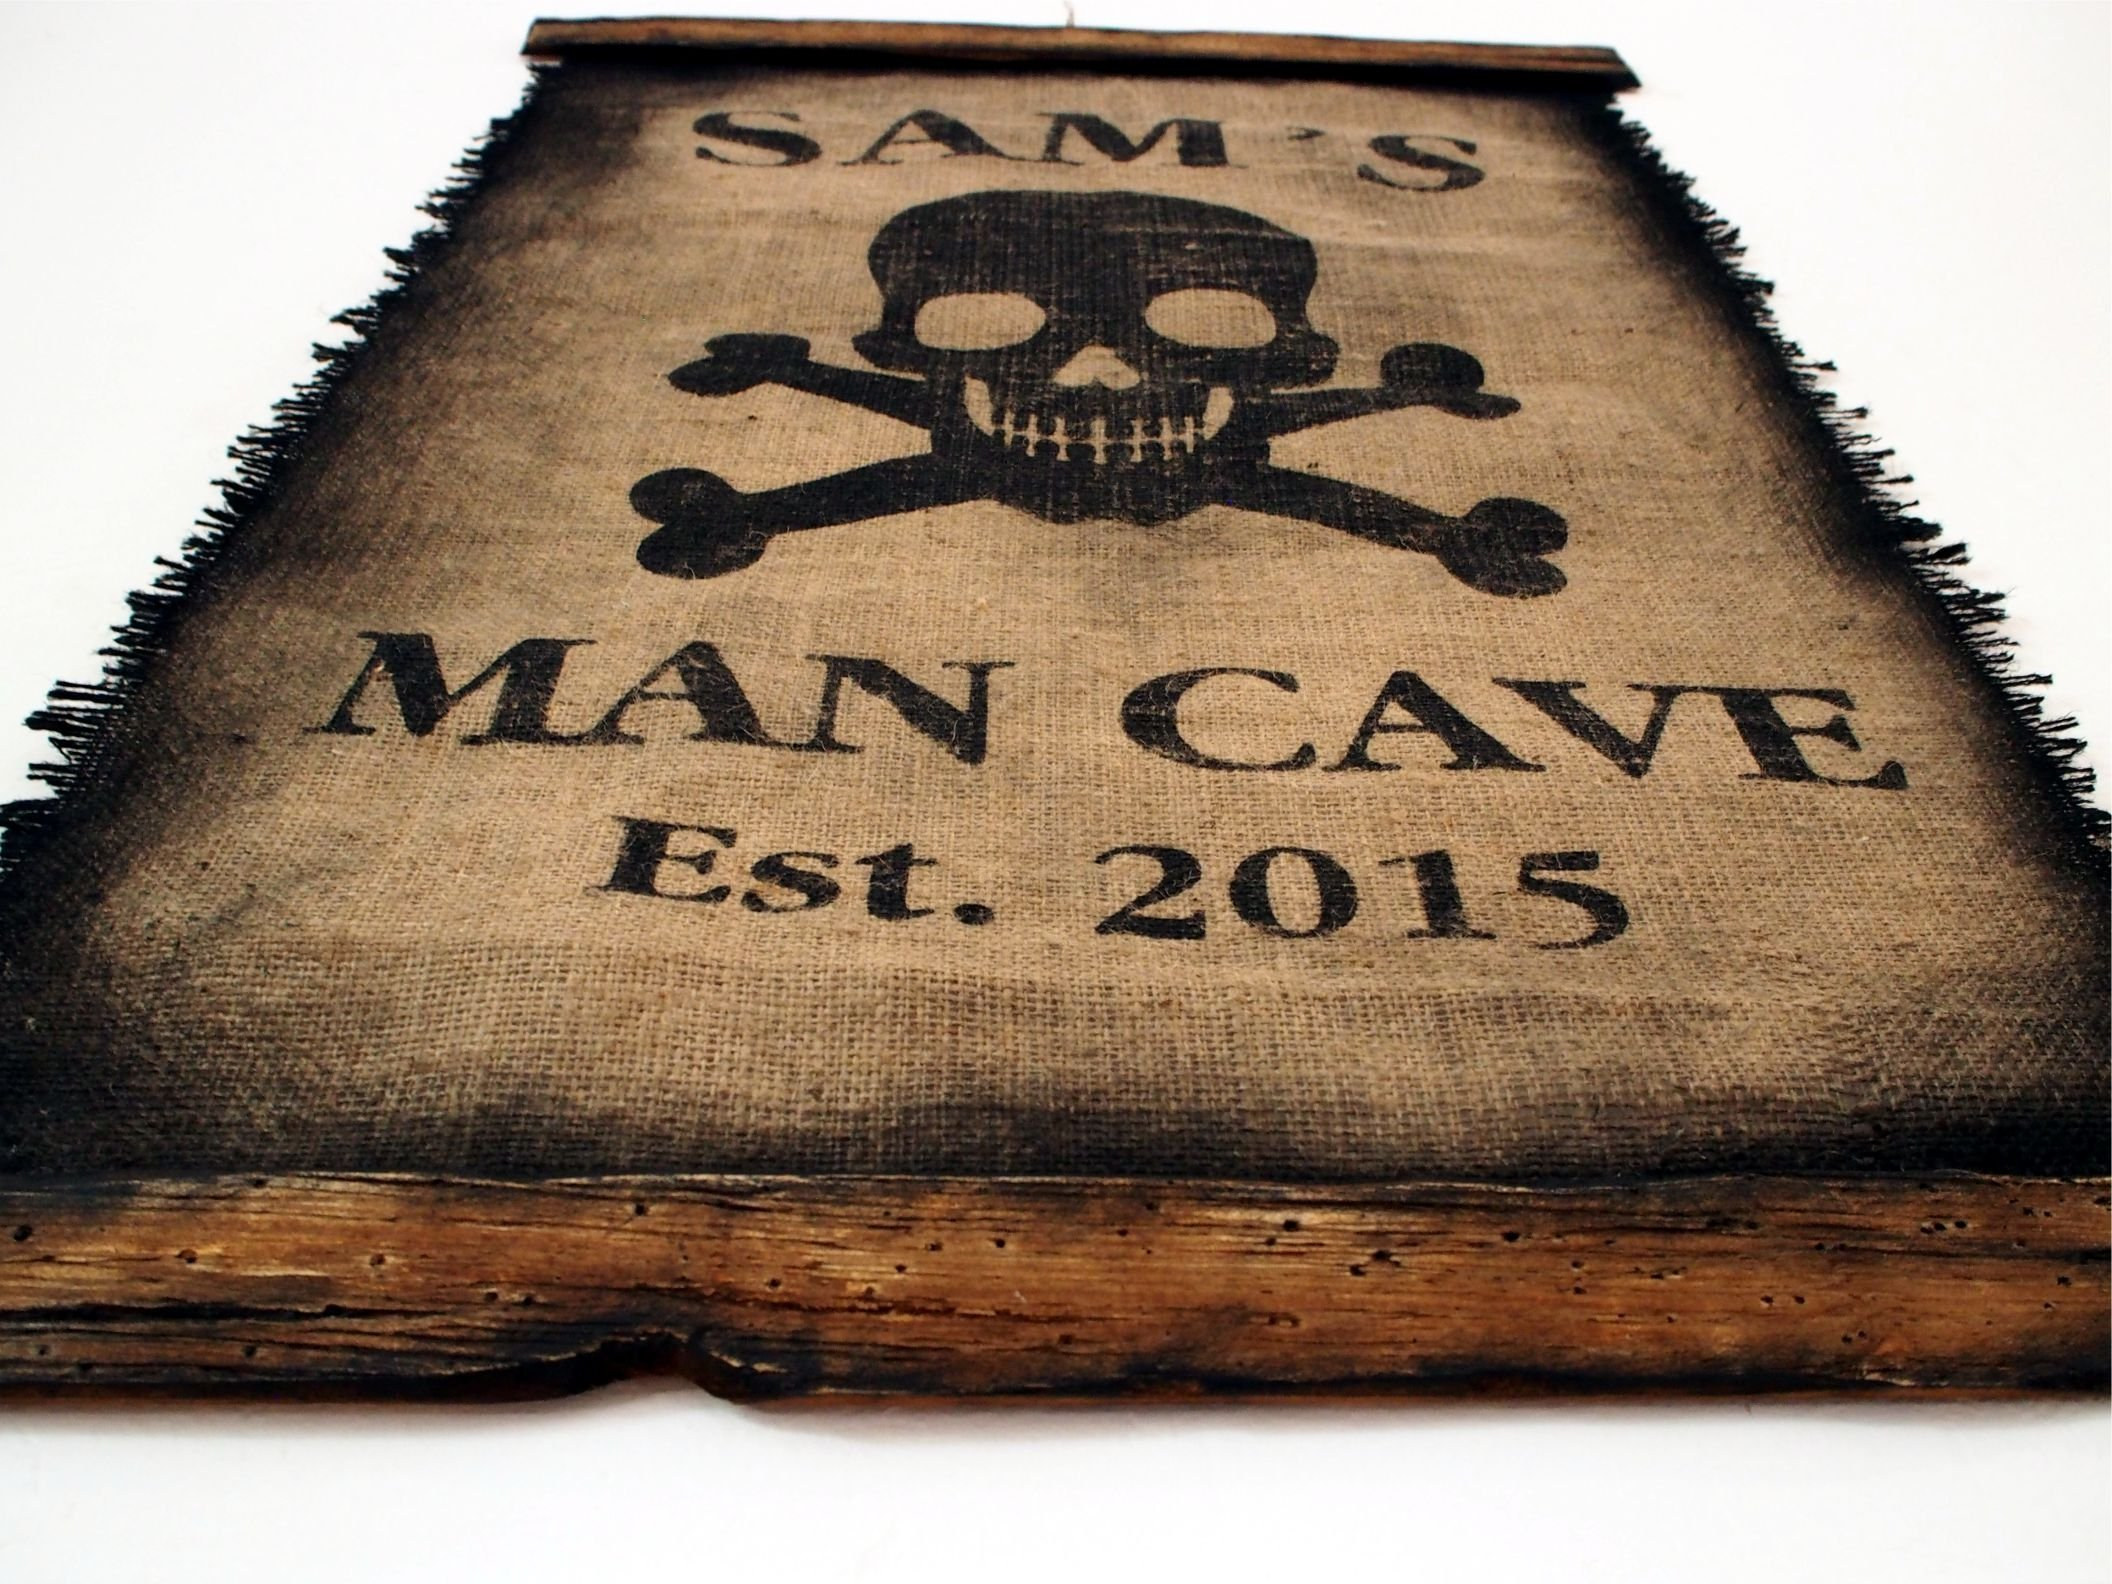 Custom Flag wall decor made of worn out burlap and wood | Rustic Decor | Pirate flag Wall art | Personalized Gift | Man Cave, Home Bar, Boys Room by Woodcraft City (Image #9)